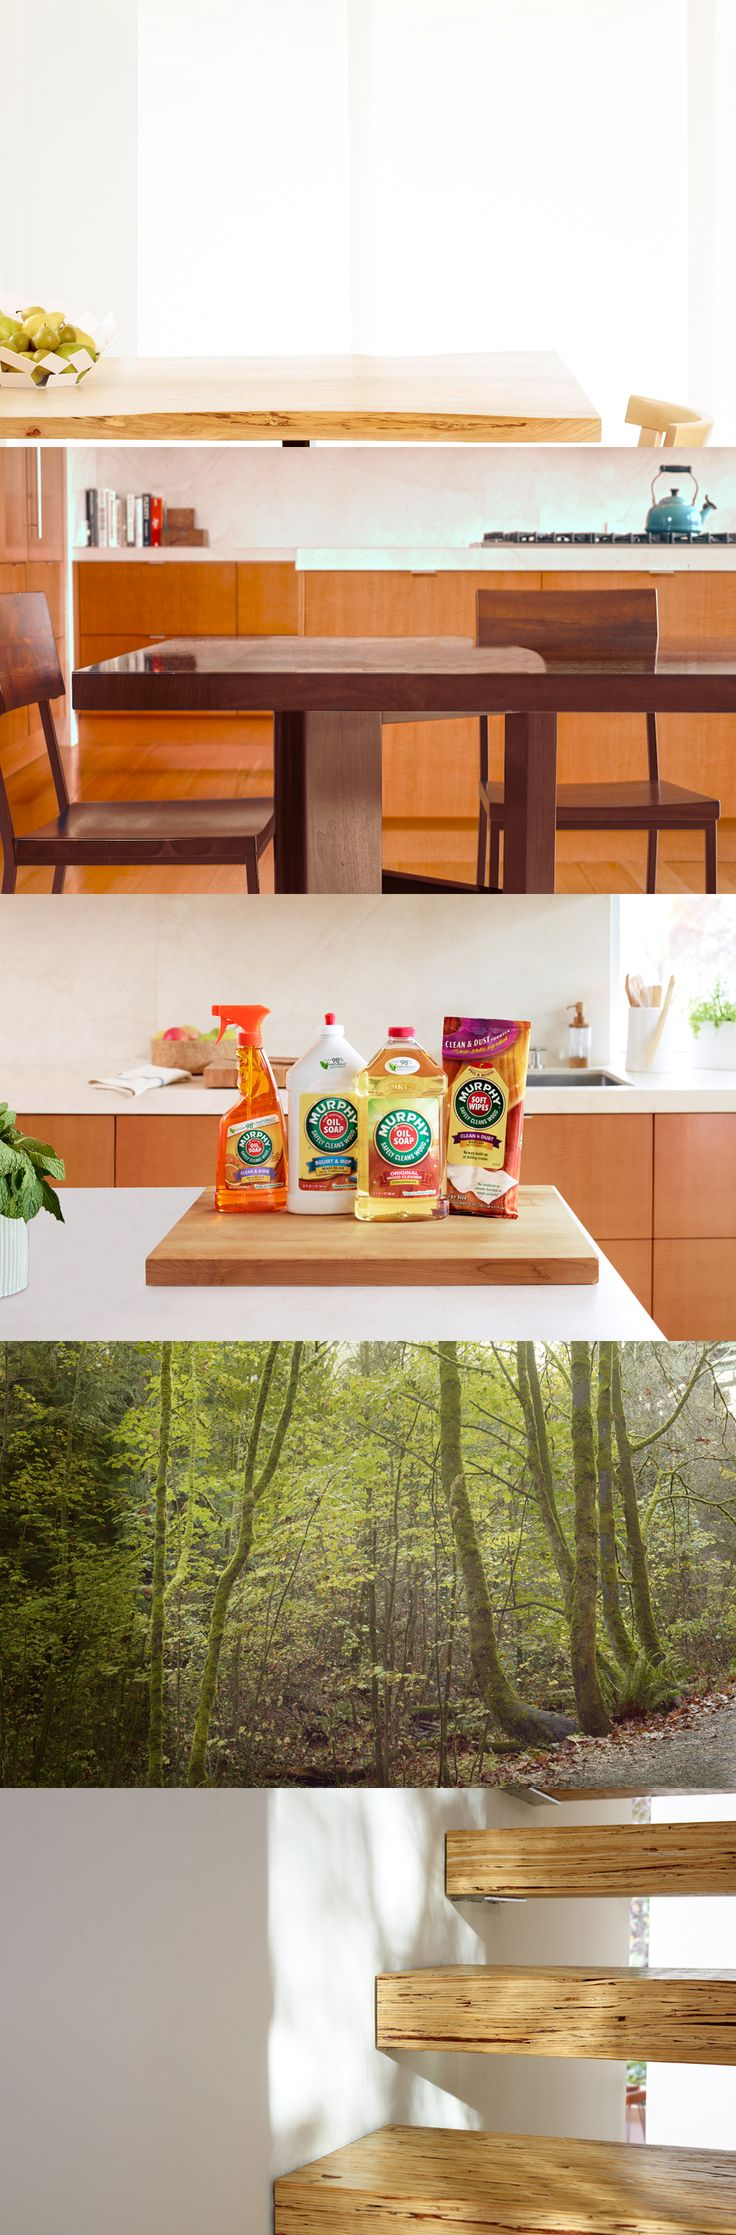 Cleaning hardwood floors with murphy oil soap - For Over A Century Murphy Oil Soap Has Been A Trusted Hardwood Floor And Wood Cleaner Safety Clean Wood With Murphy Oil Soap